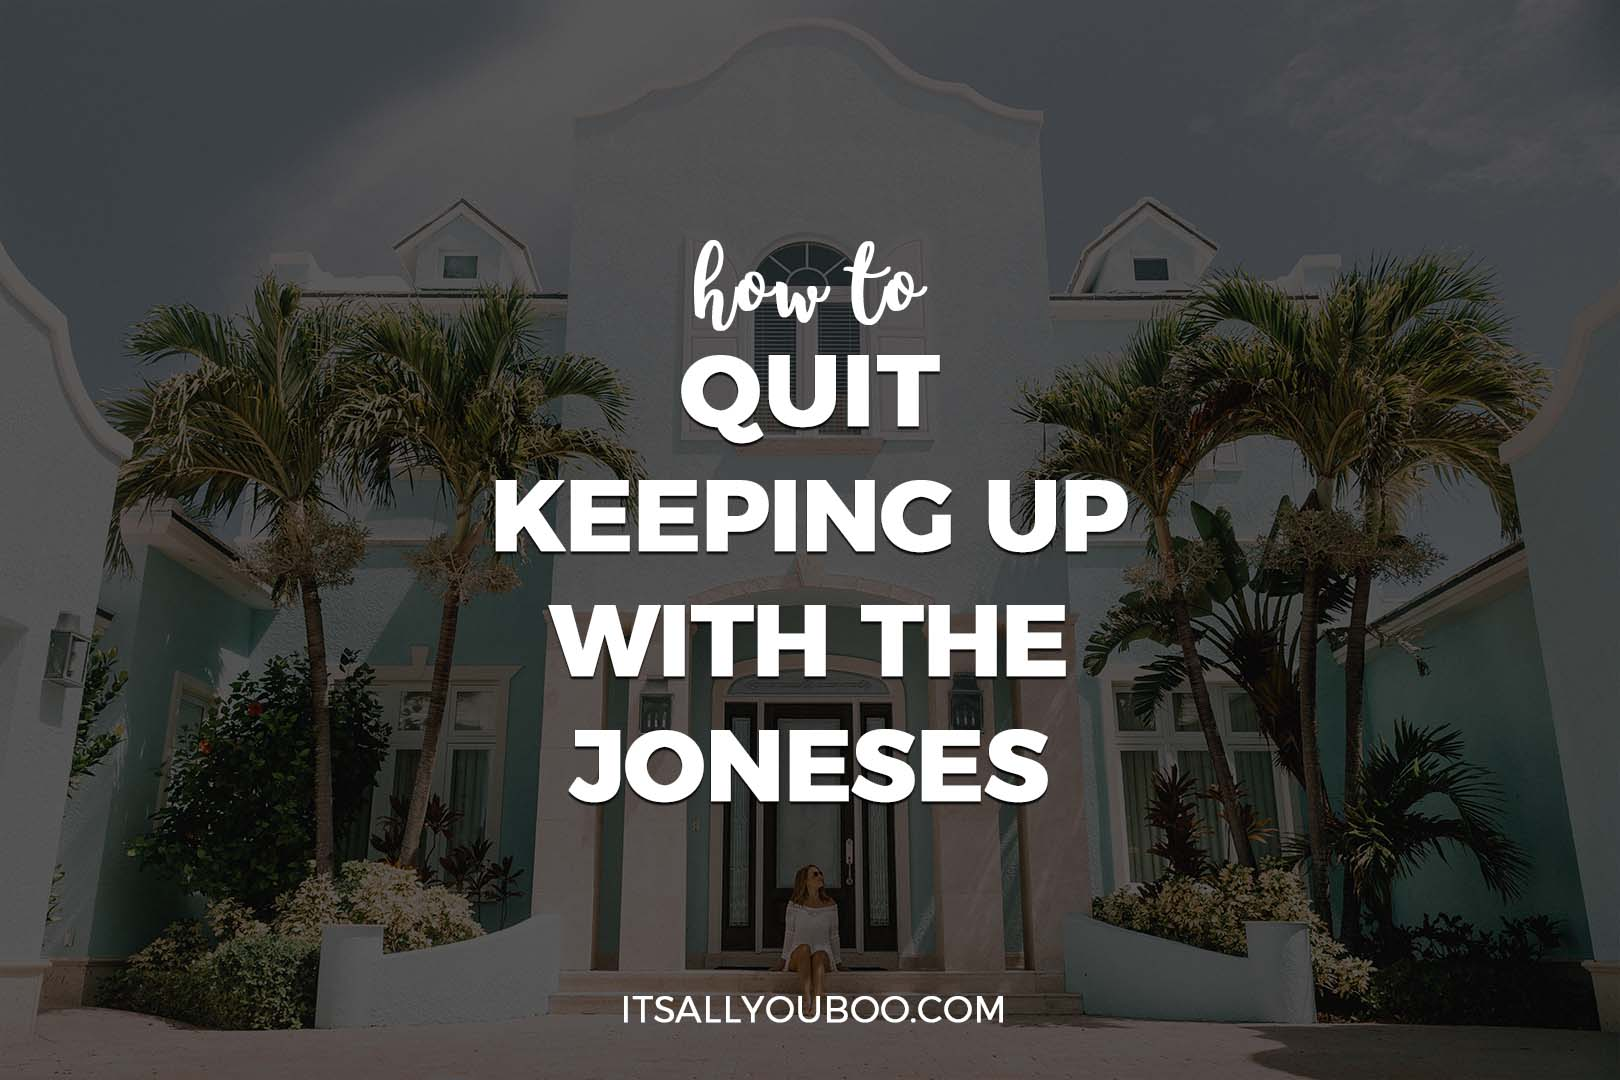 How to Quit Keeping Up with the Joneses